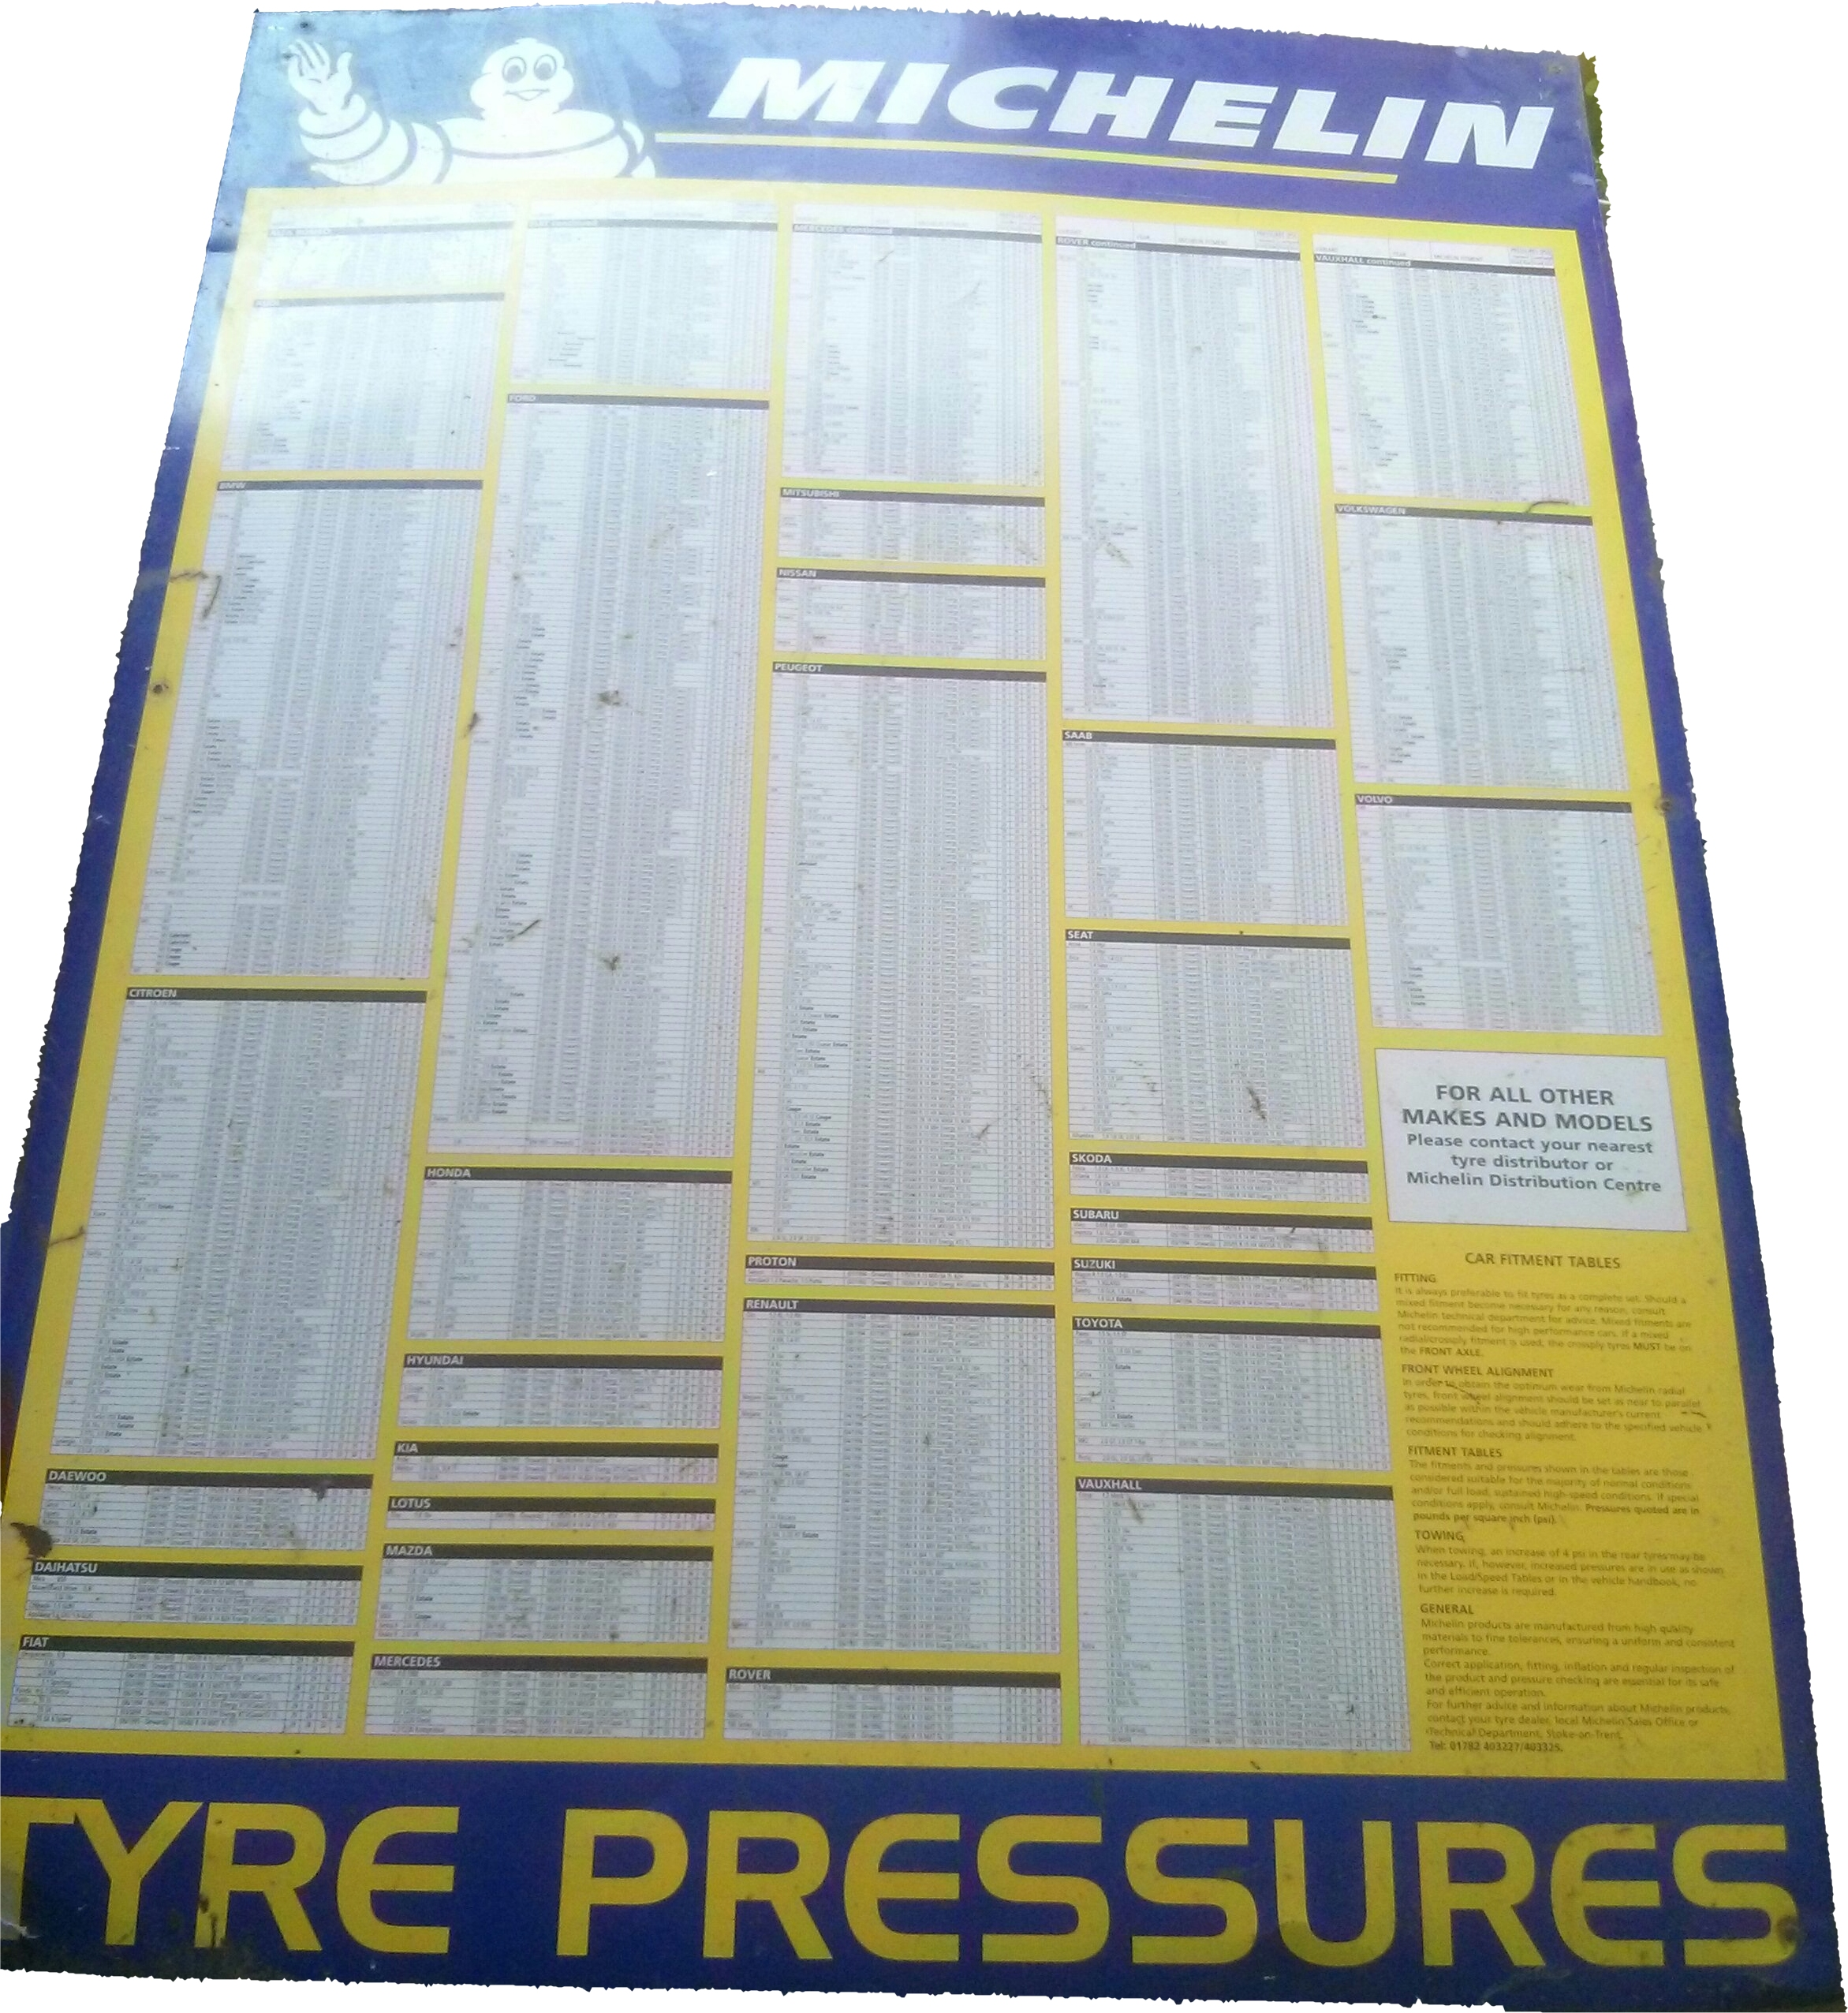 Michelin car tyre pressure chart load and inflation tables hd image of michelin tyre pressure wall sign blue hg automobilia nvjuhfo Images